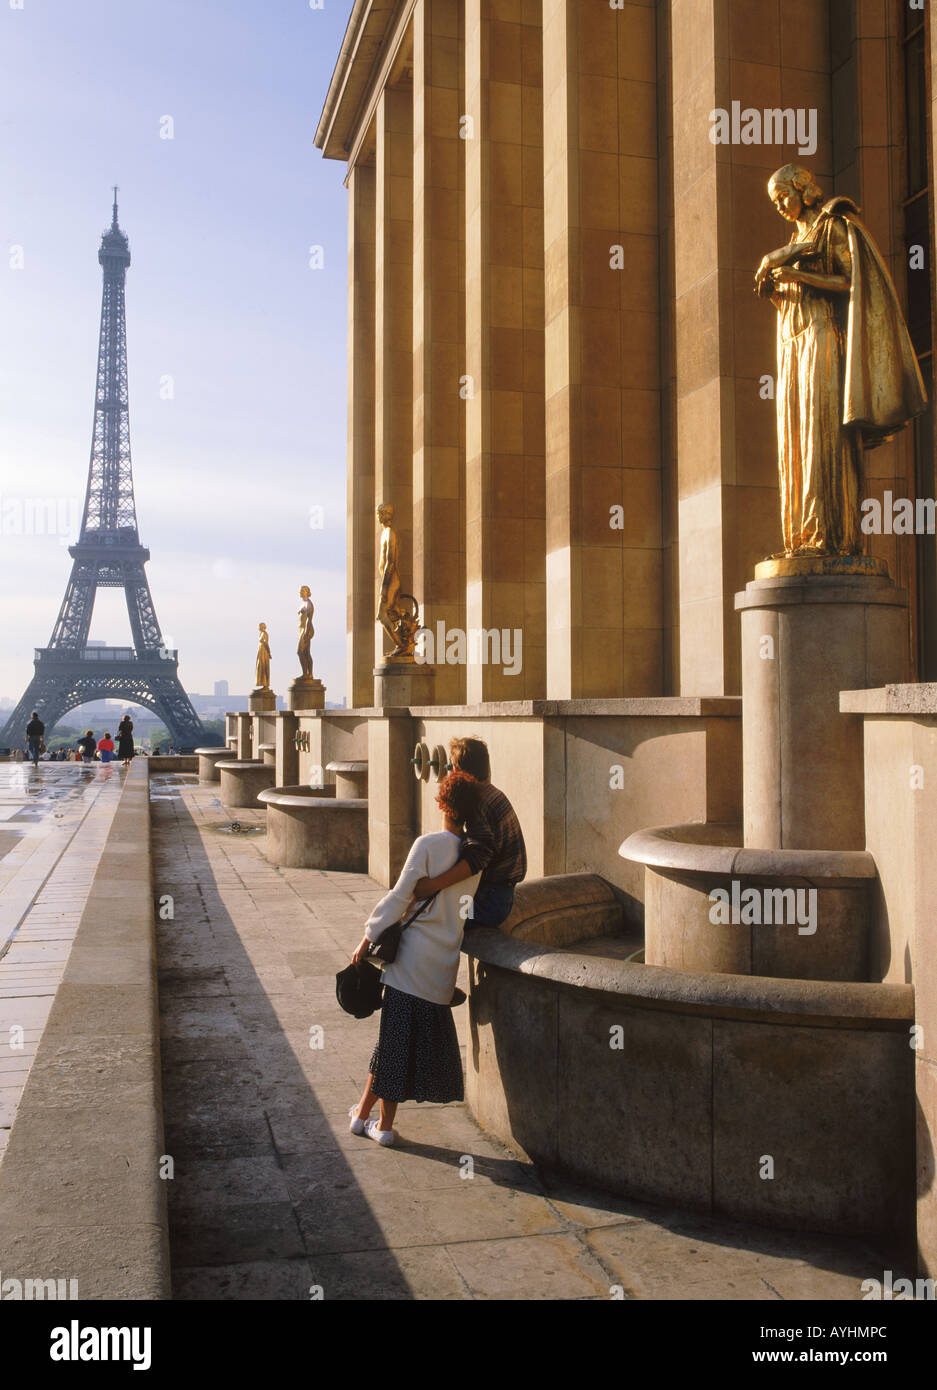 Couple at Palais Chaillot with Golden Figurines and Eiffel Tower at sunrise - Stock Image